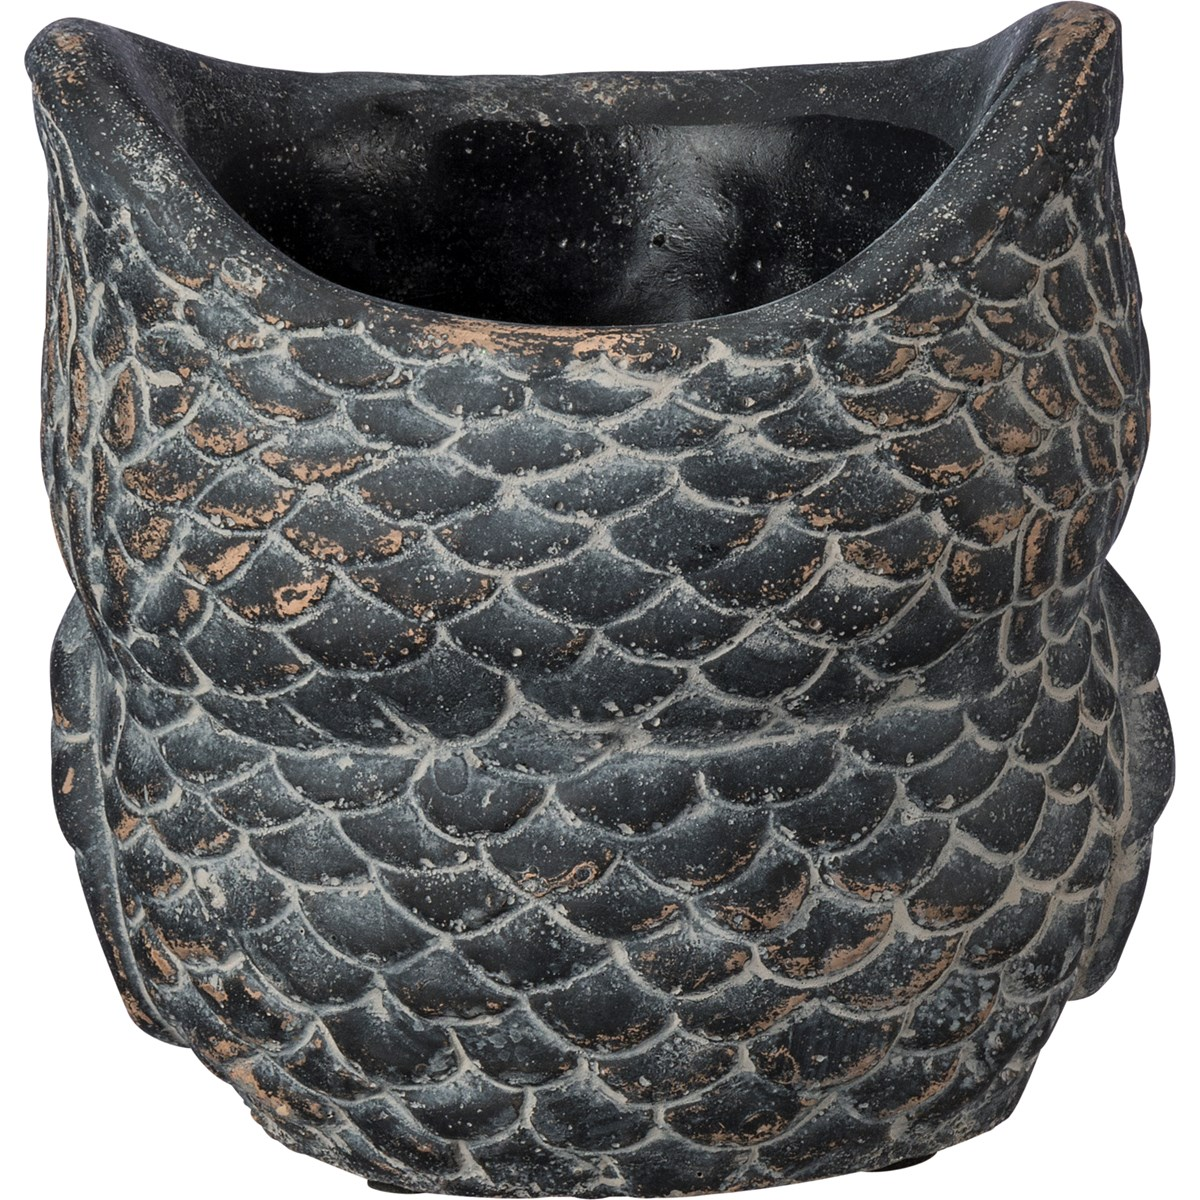 "Cement Owl Planter - Lg - 5.50"" x 5"" x 5.50"" - Cement"